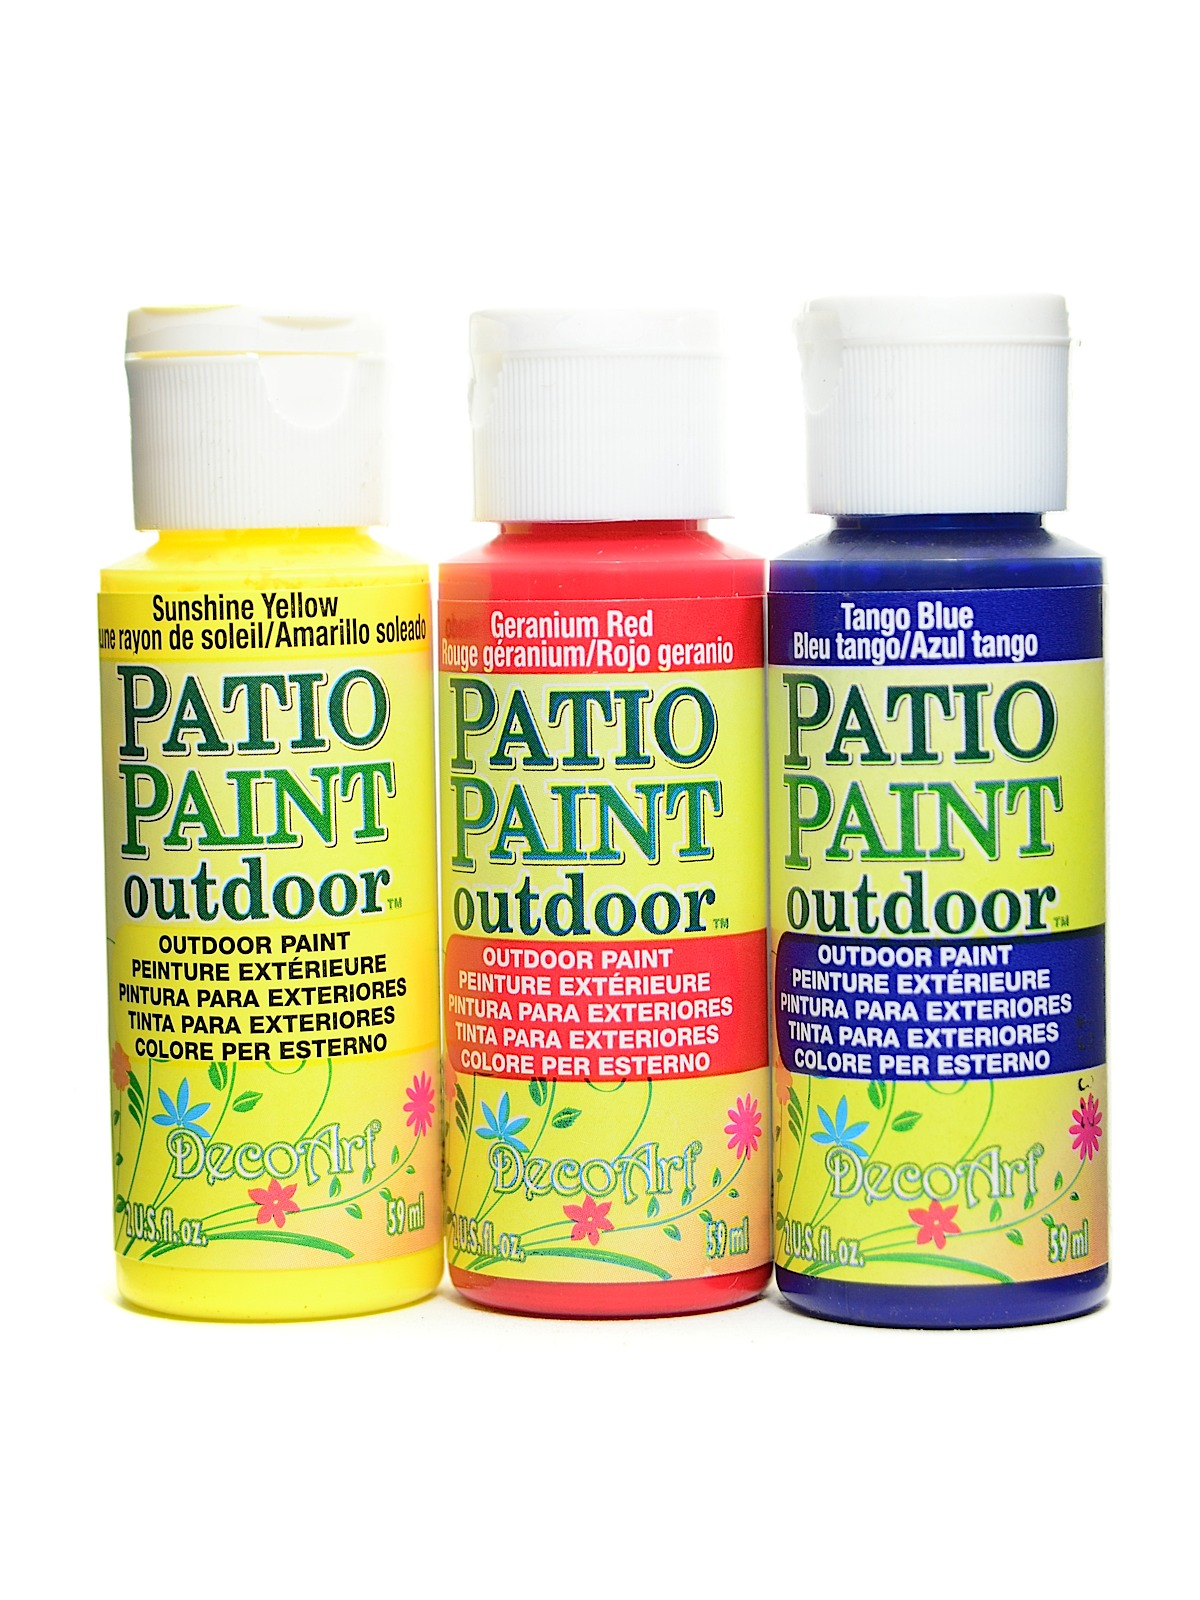 Wondrous Patio Paint Download Free Architecture Designs Embacsunscenecom